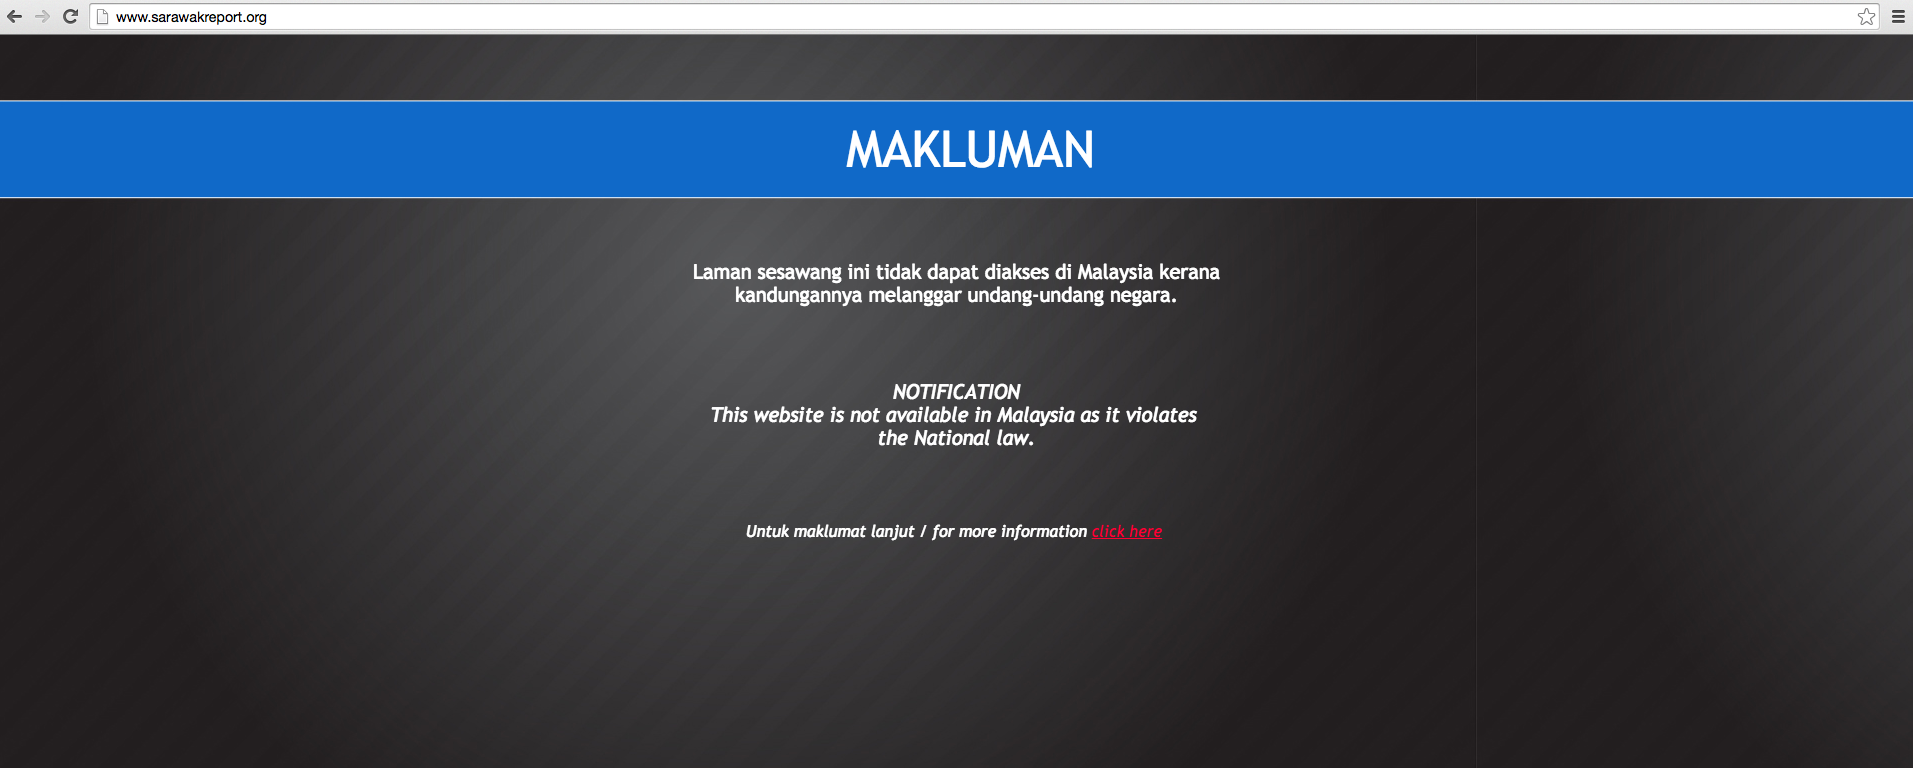 The News Site Sarawakreportorg Has Been Blocked By The Mcmc But Says -4695